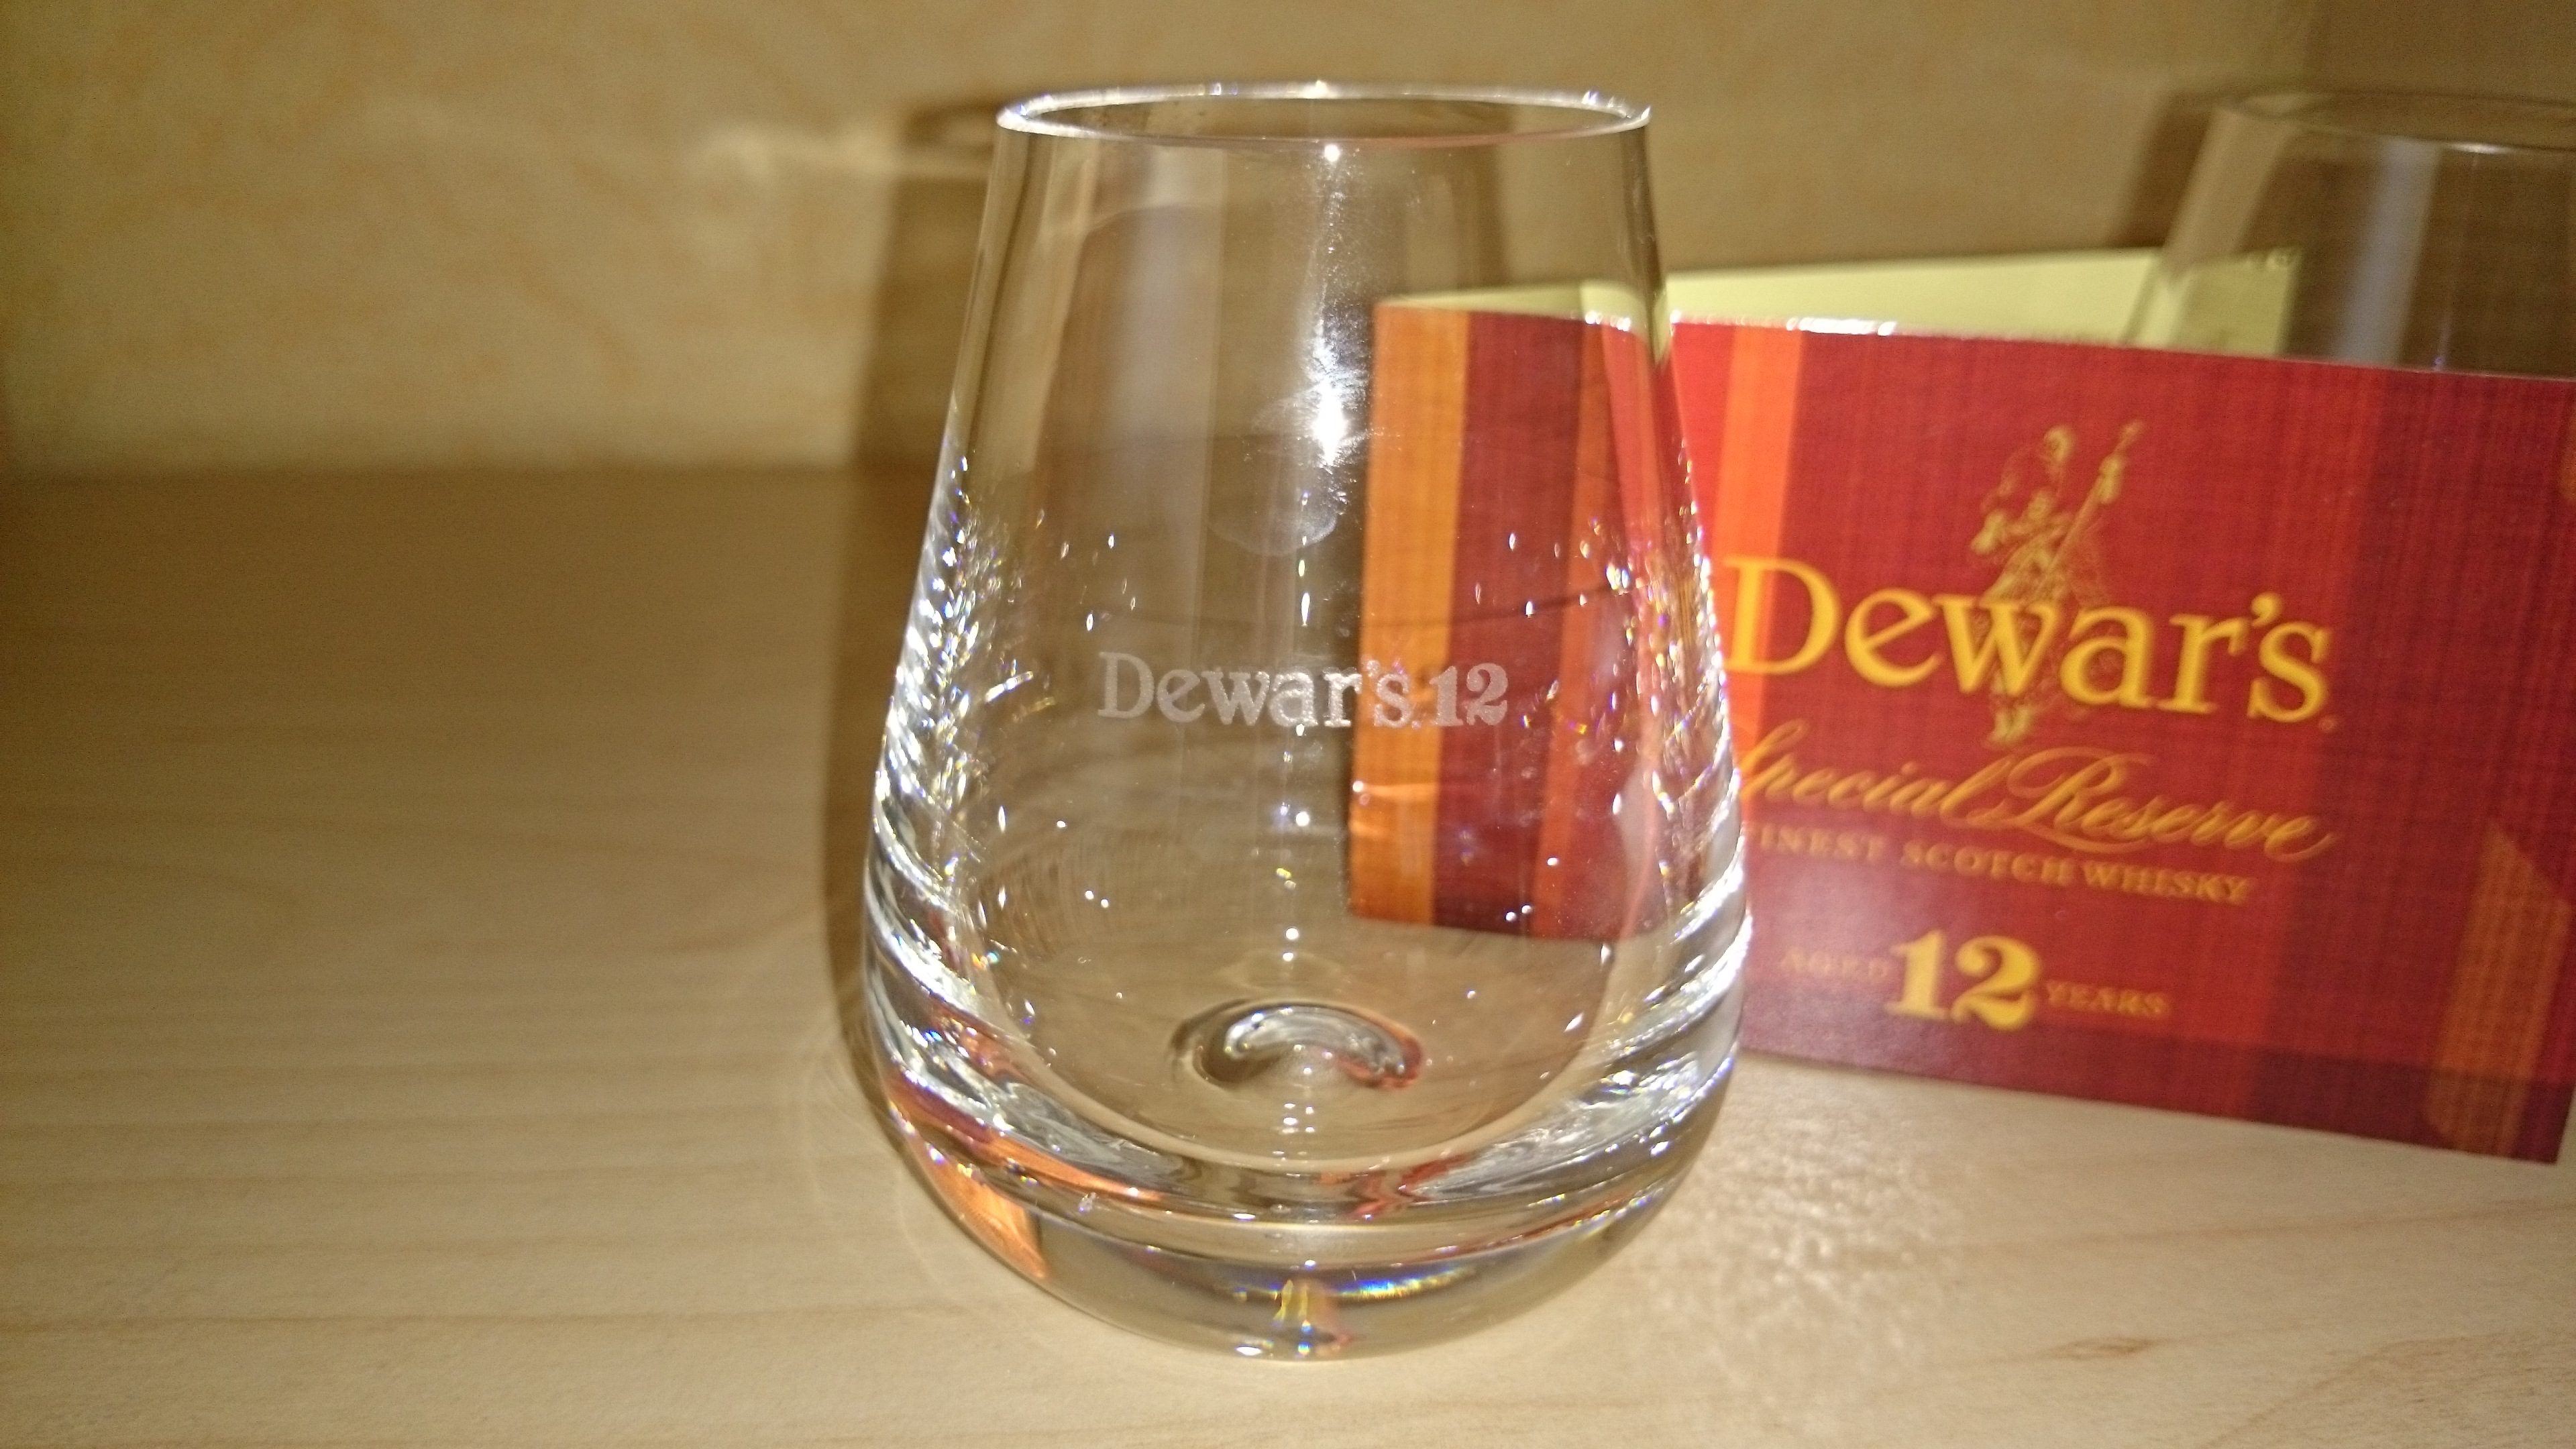 neu dewar 39 s dewars 2 x kristall whisky gl ser glas scotch 2 st ck ebay. Black Bedroom Furniture Sets. Home Design Ideas